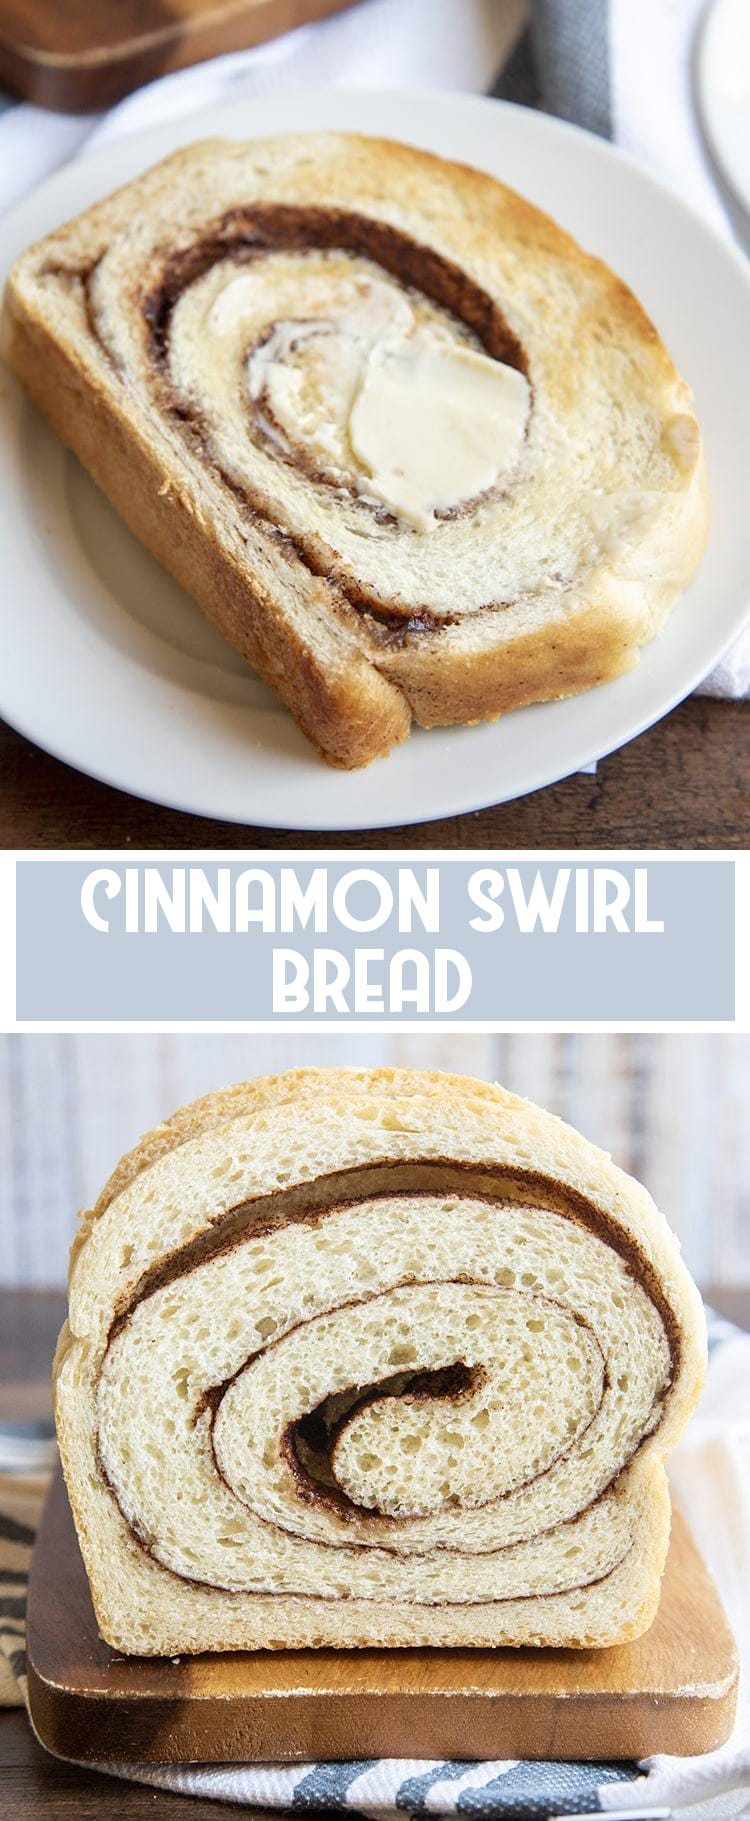 A piece of cinnamon swirl toast with butter on top on a white plate with a second photo of aloaf of cinnamon swirl bread text overlay for pinterest